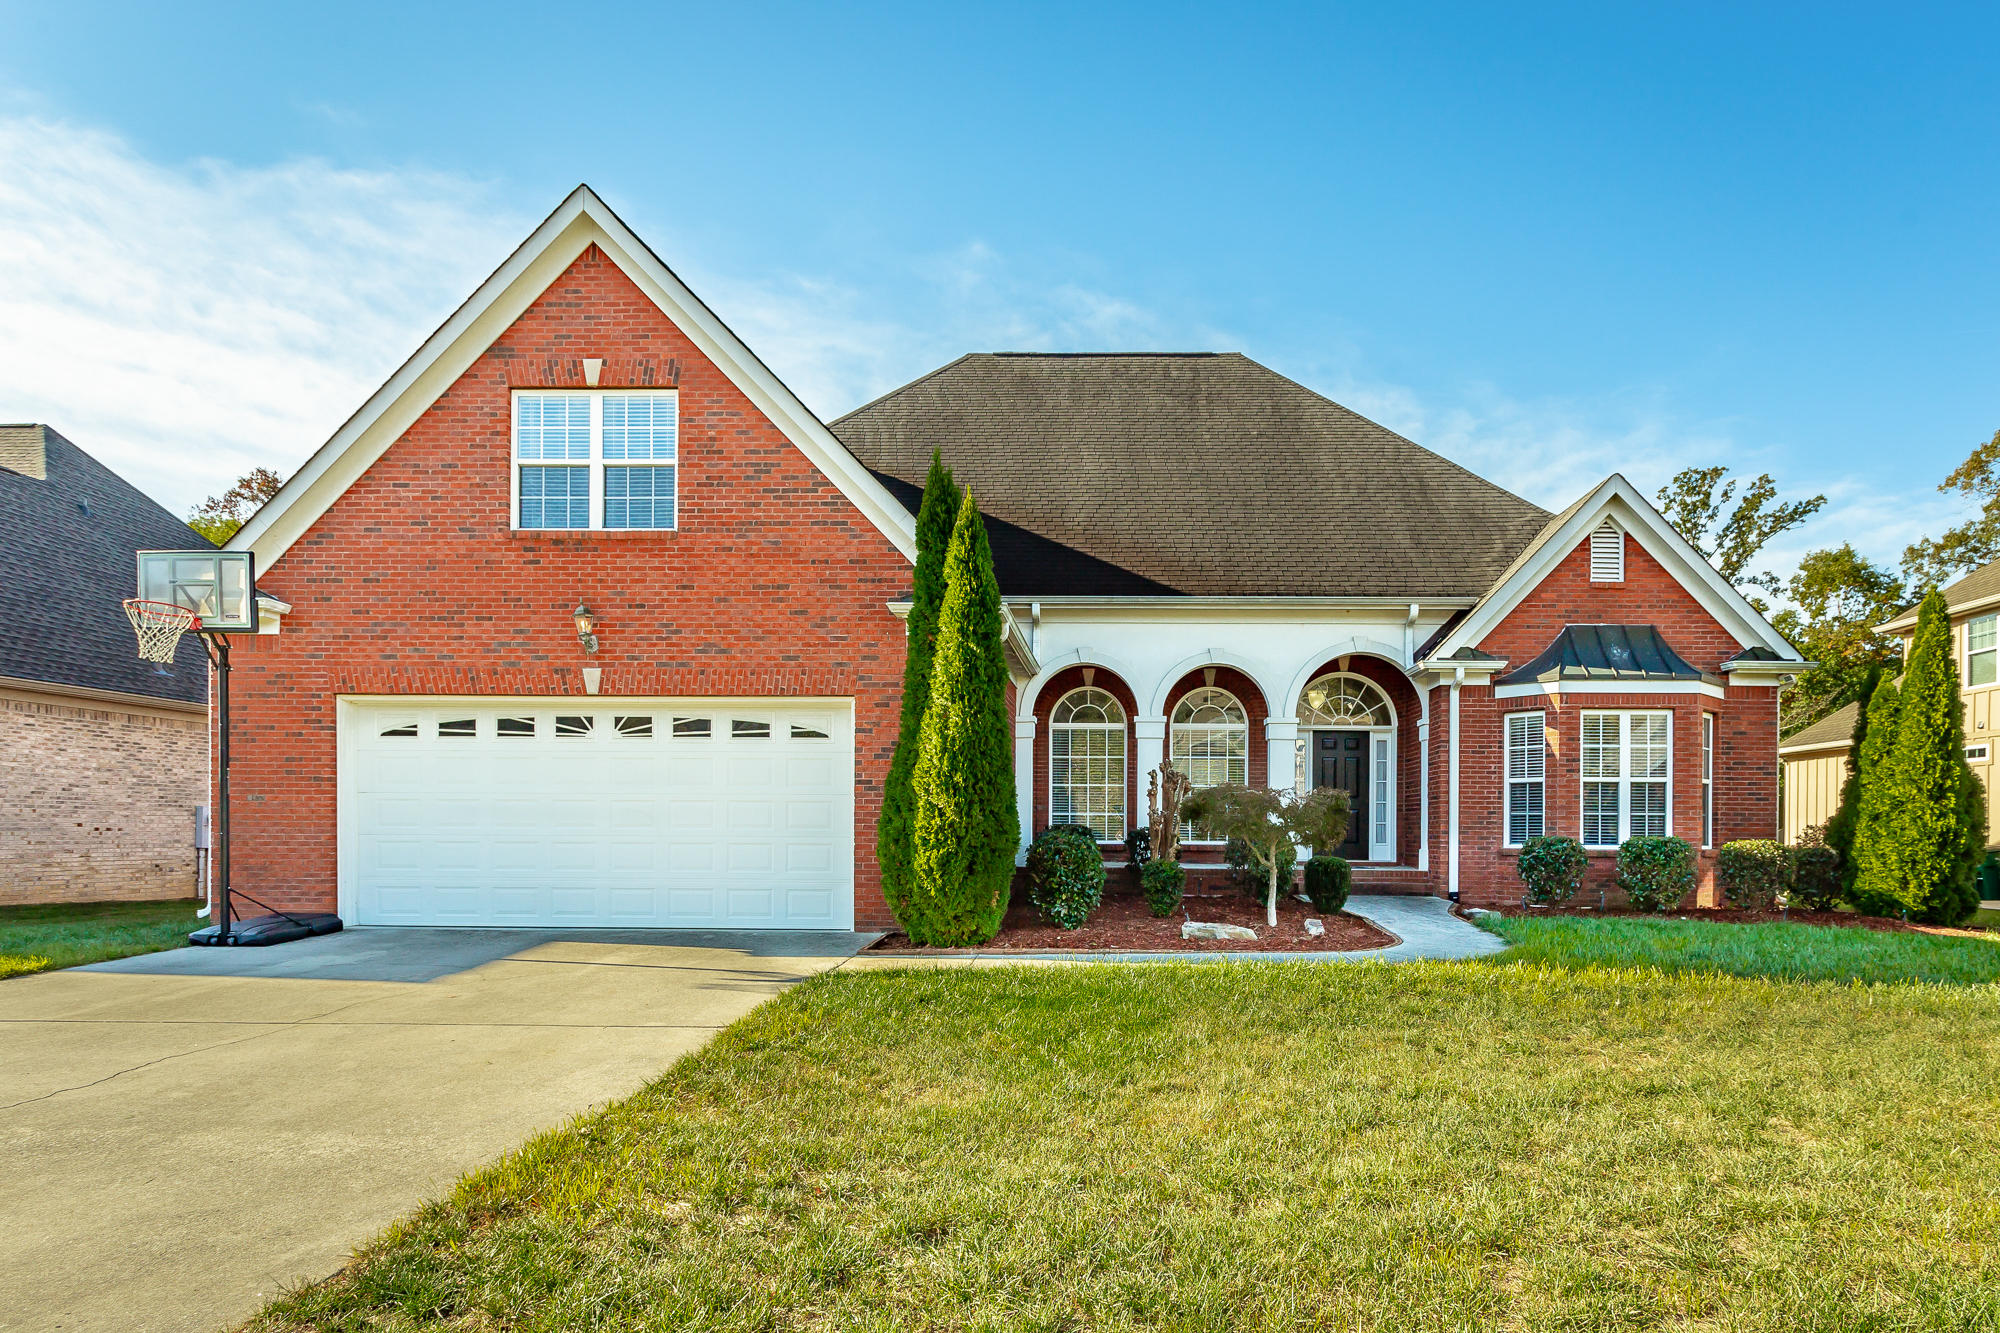 9258 Wandering Way, Ooltewah, TN 37363